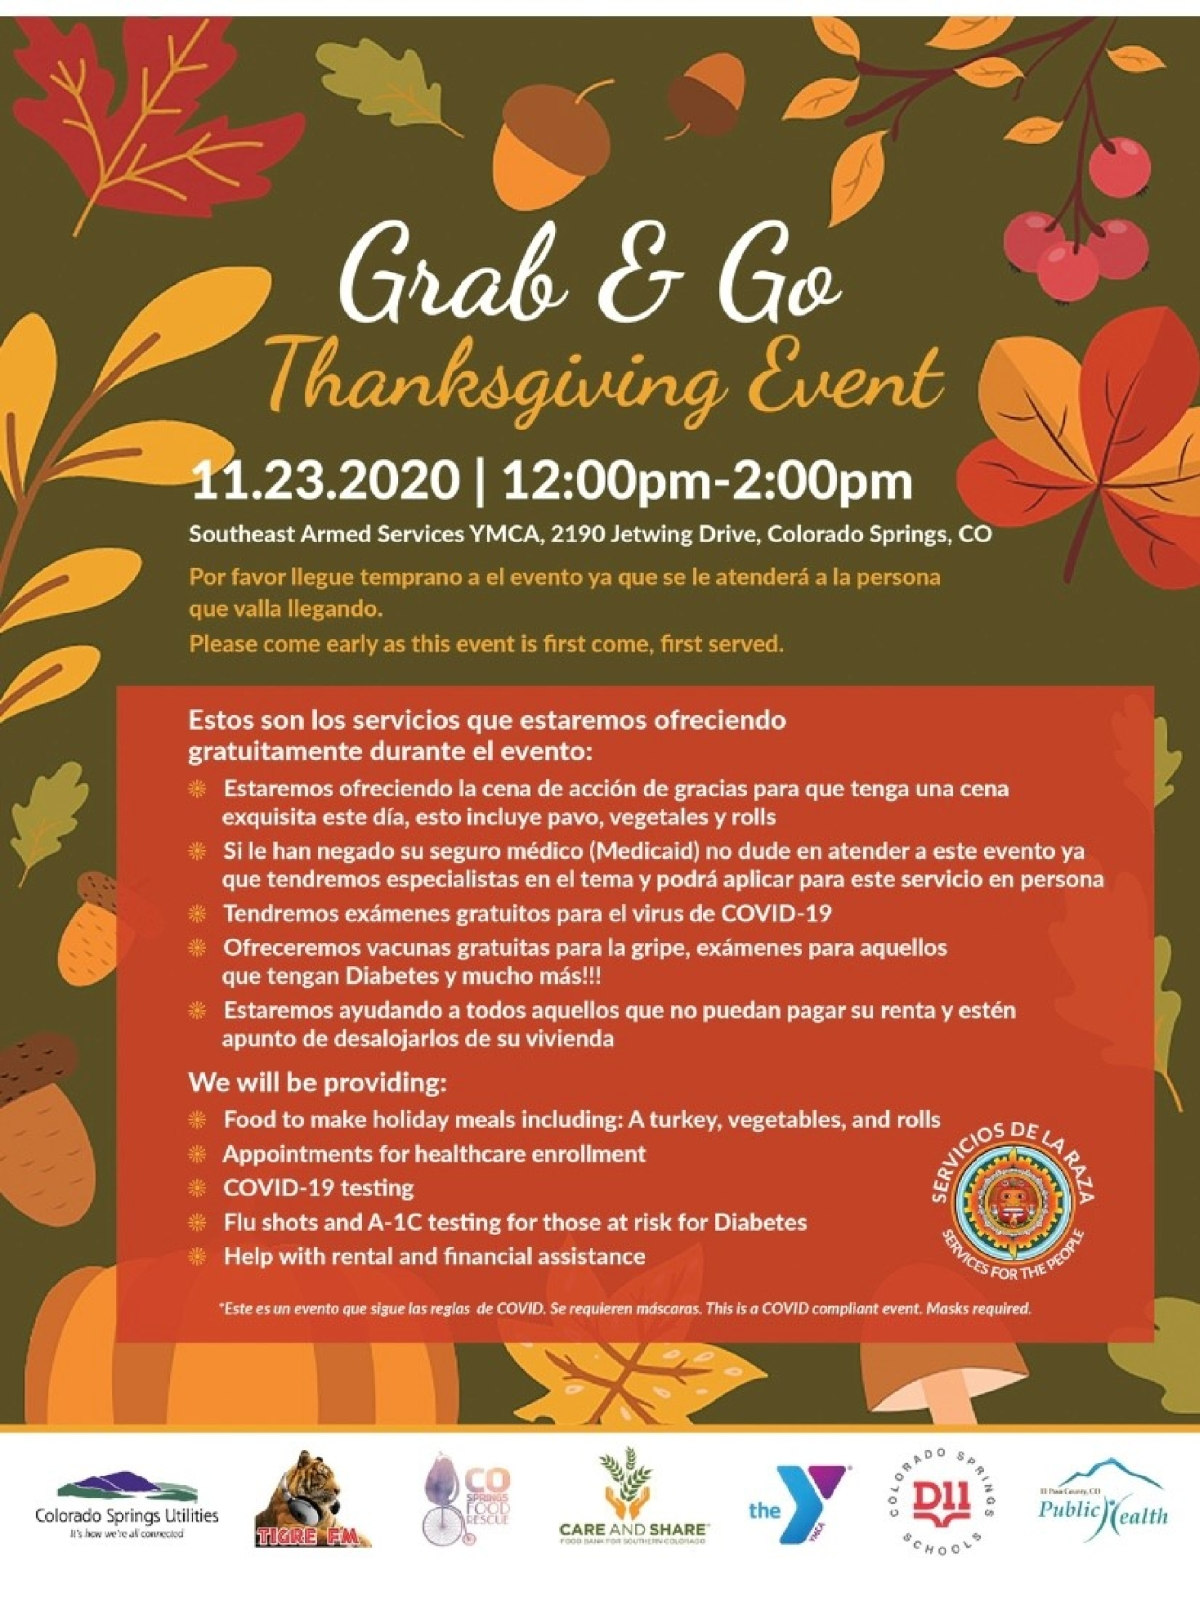 Image of a flyer titled Grab & Go Thanksgiving Event